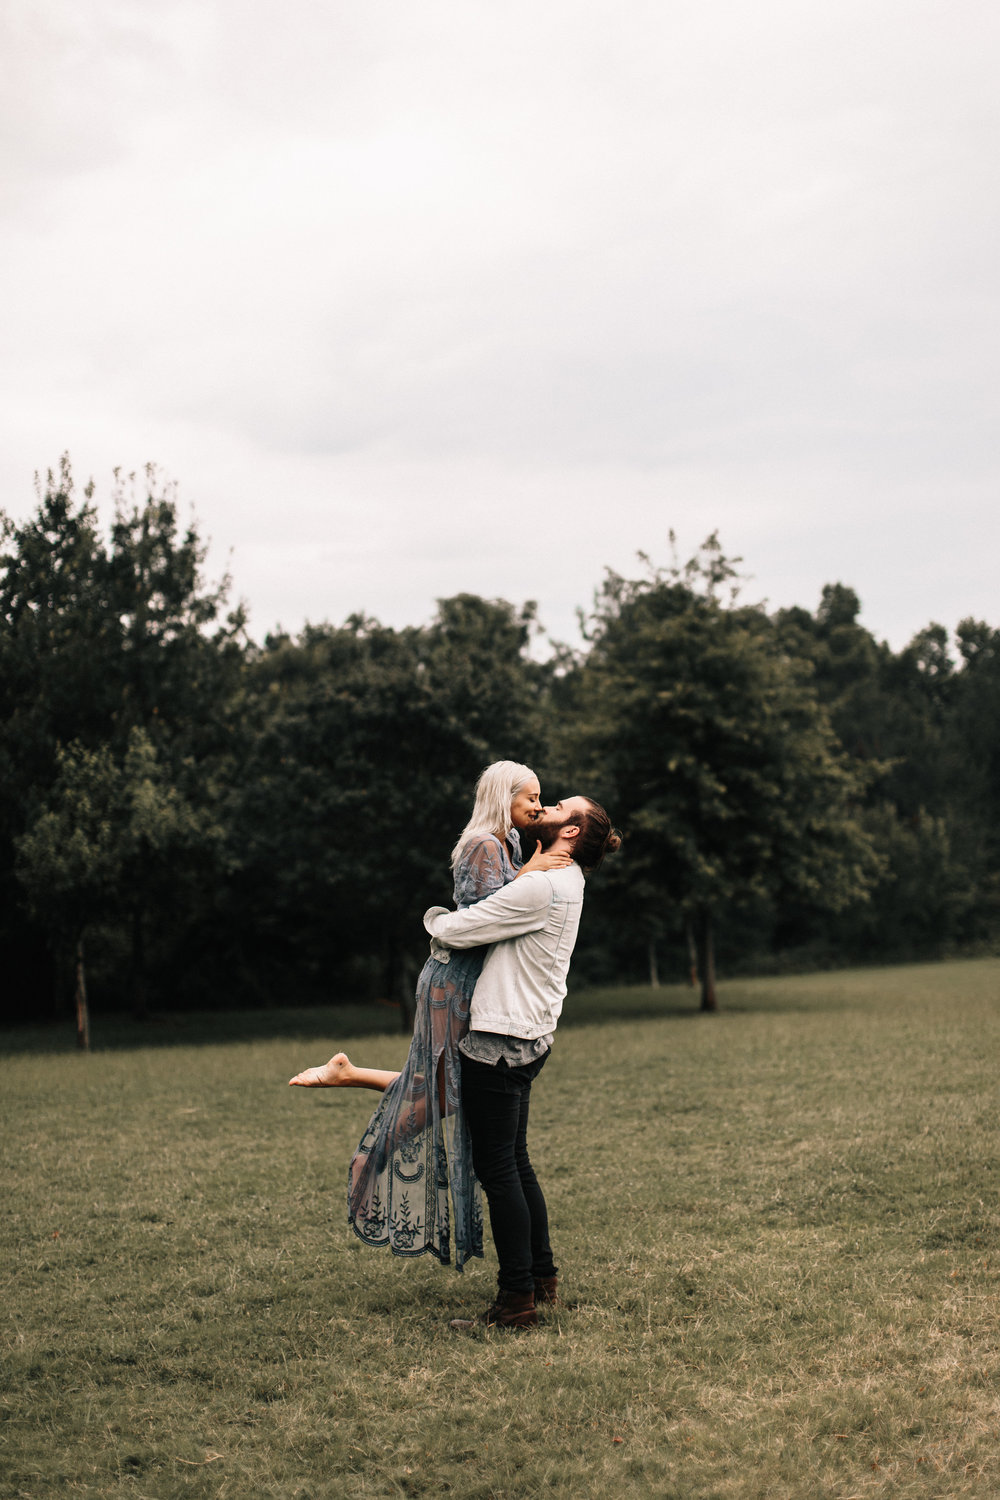 16-lauren-taylor-watt-atlanta-rainy-day-engagement.JPG